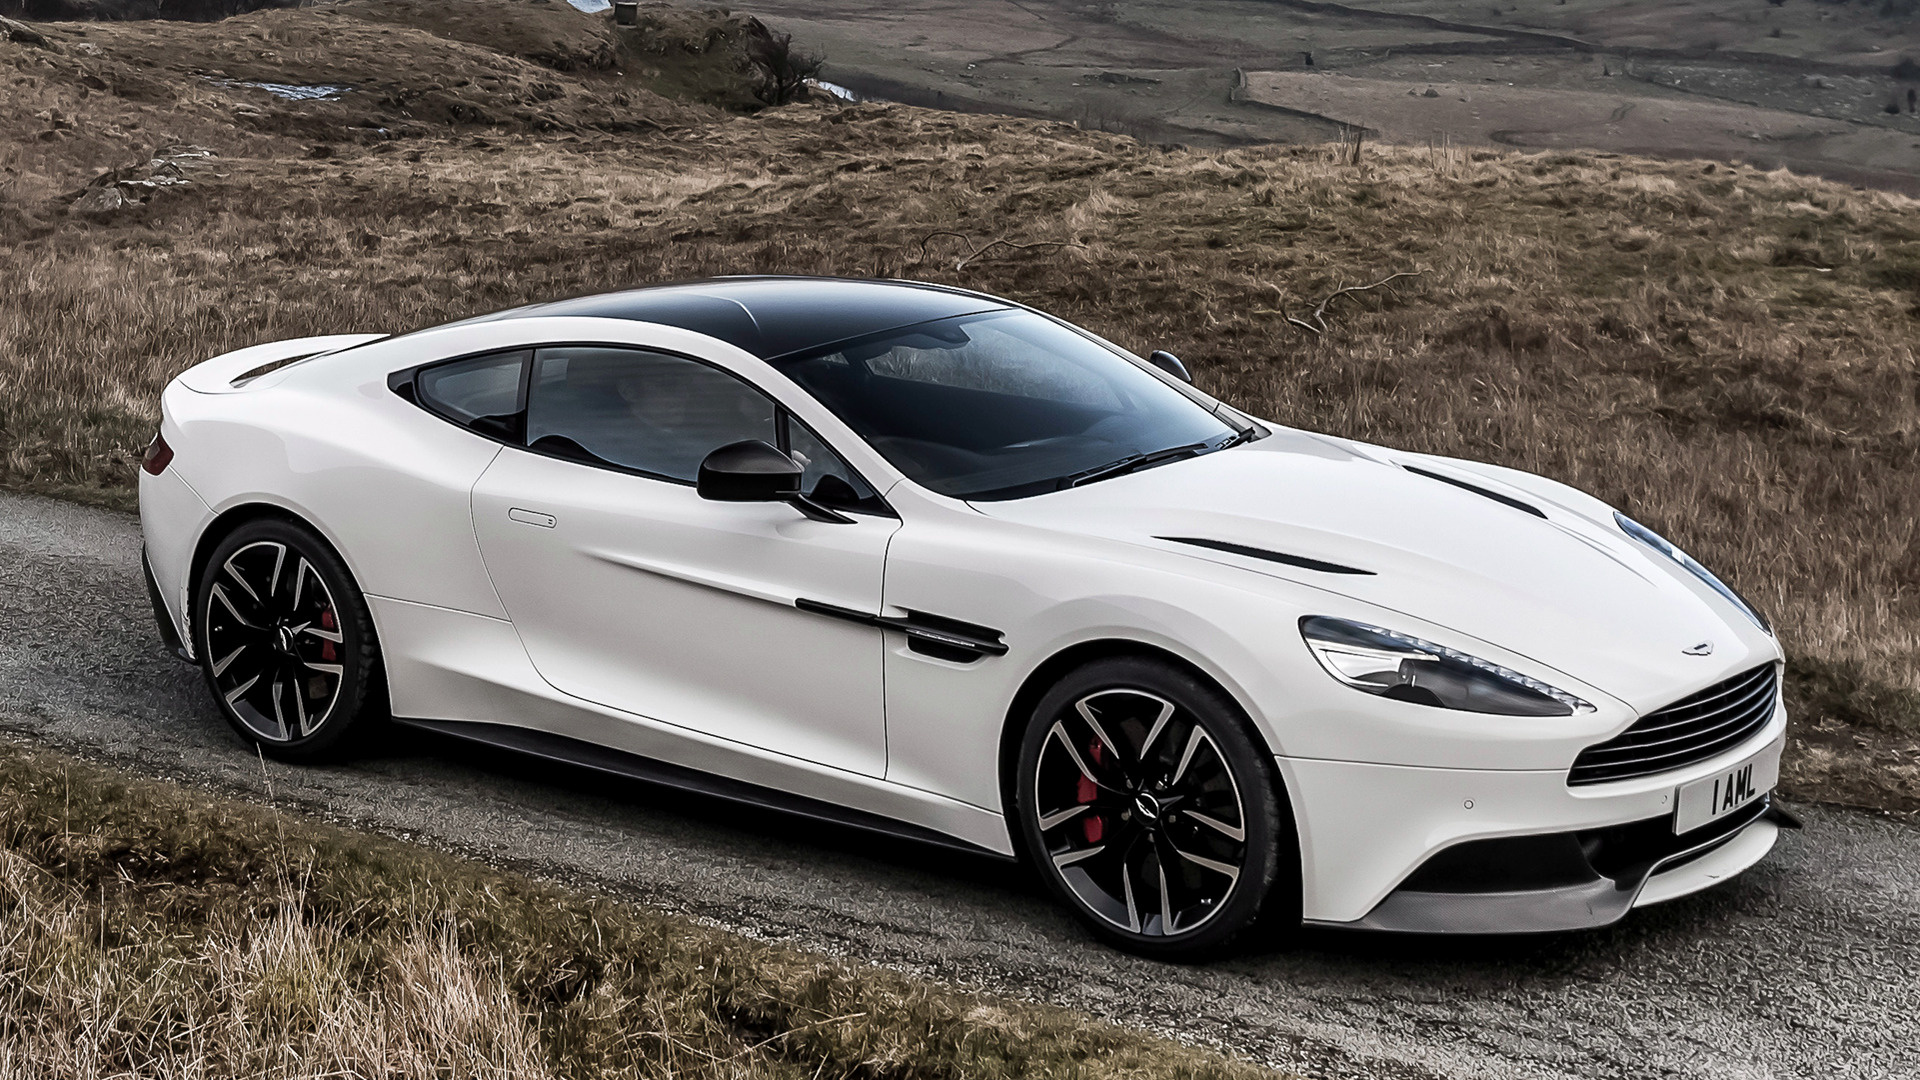 2014 Aston Martin Vanquish Carbon White UK   Wallpapers and HD 1920x1080